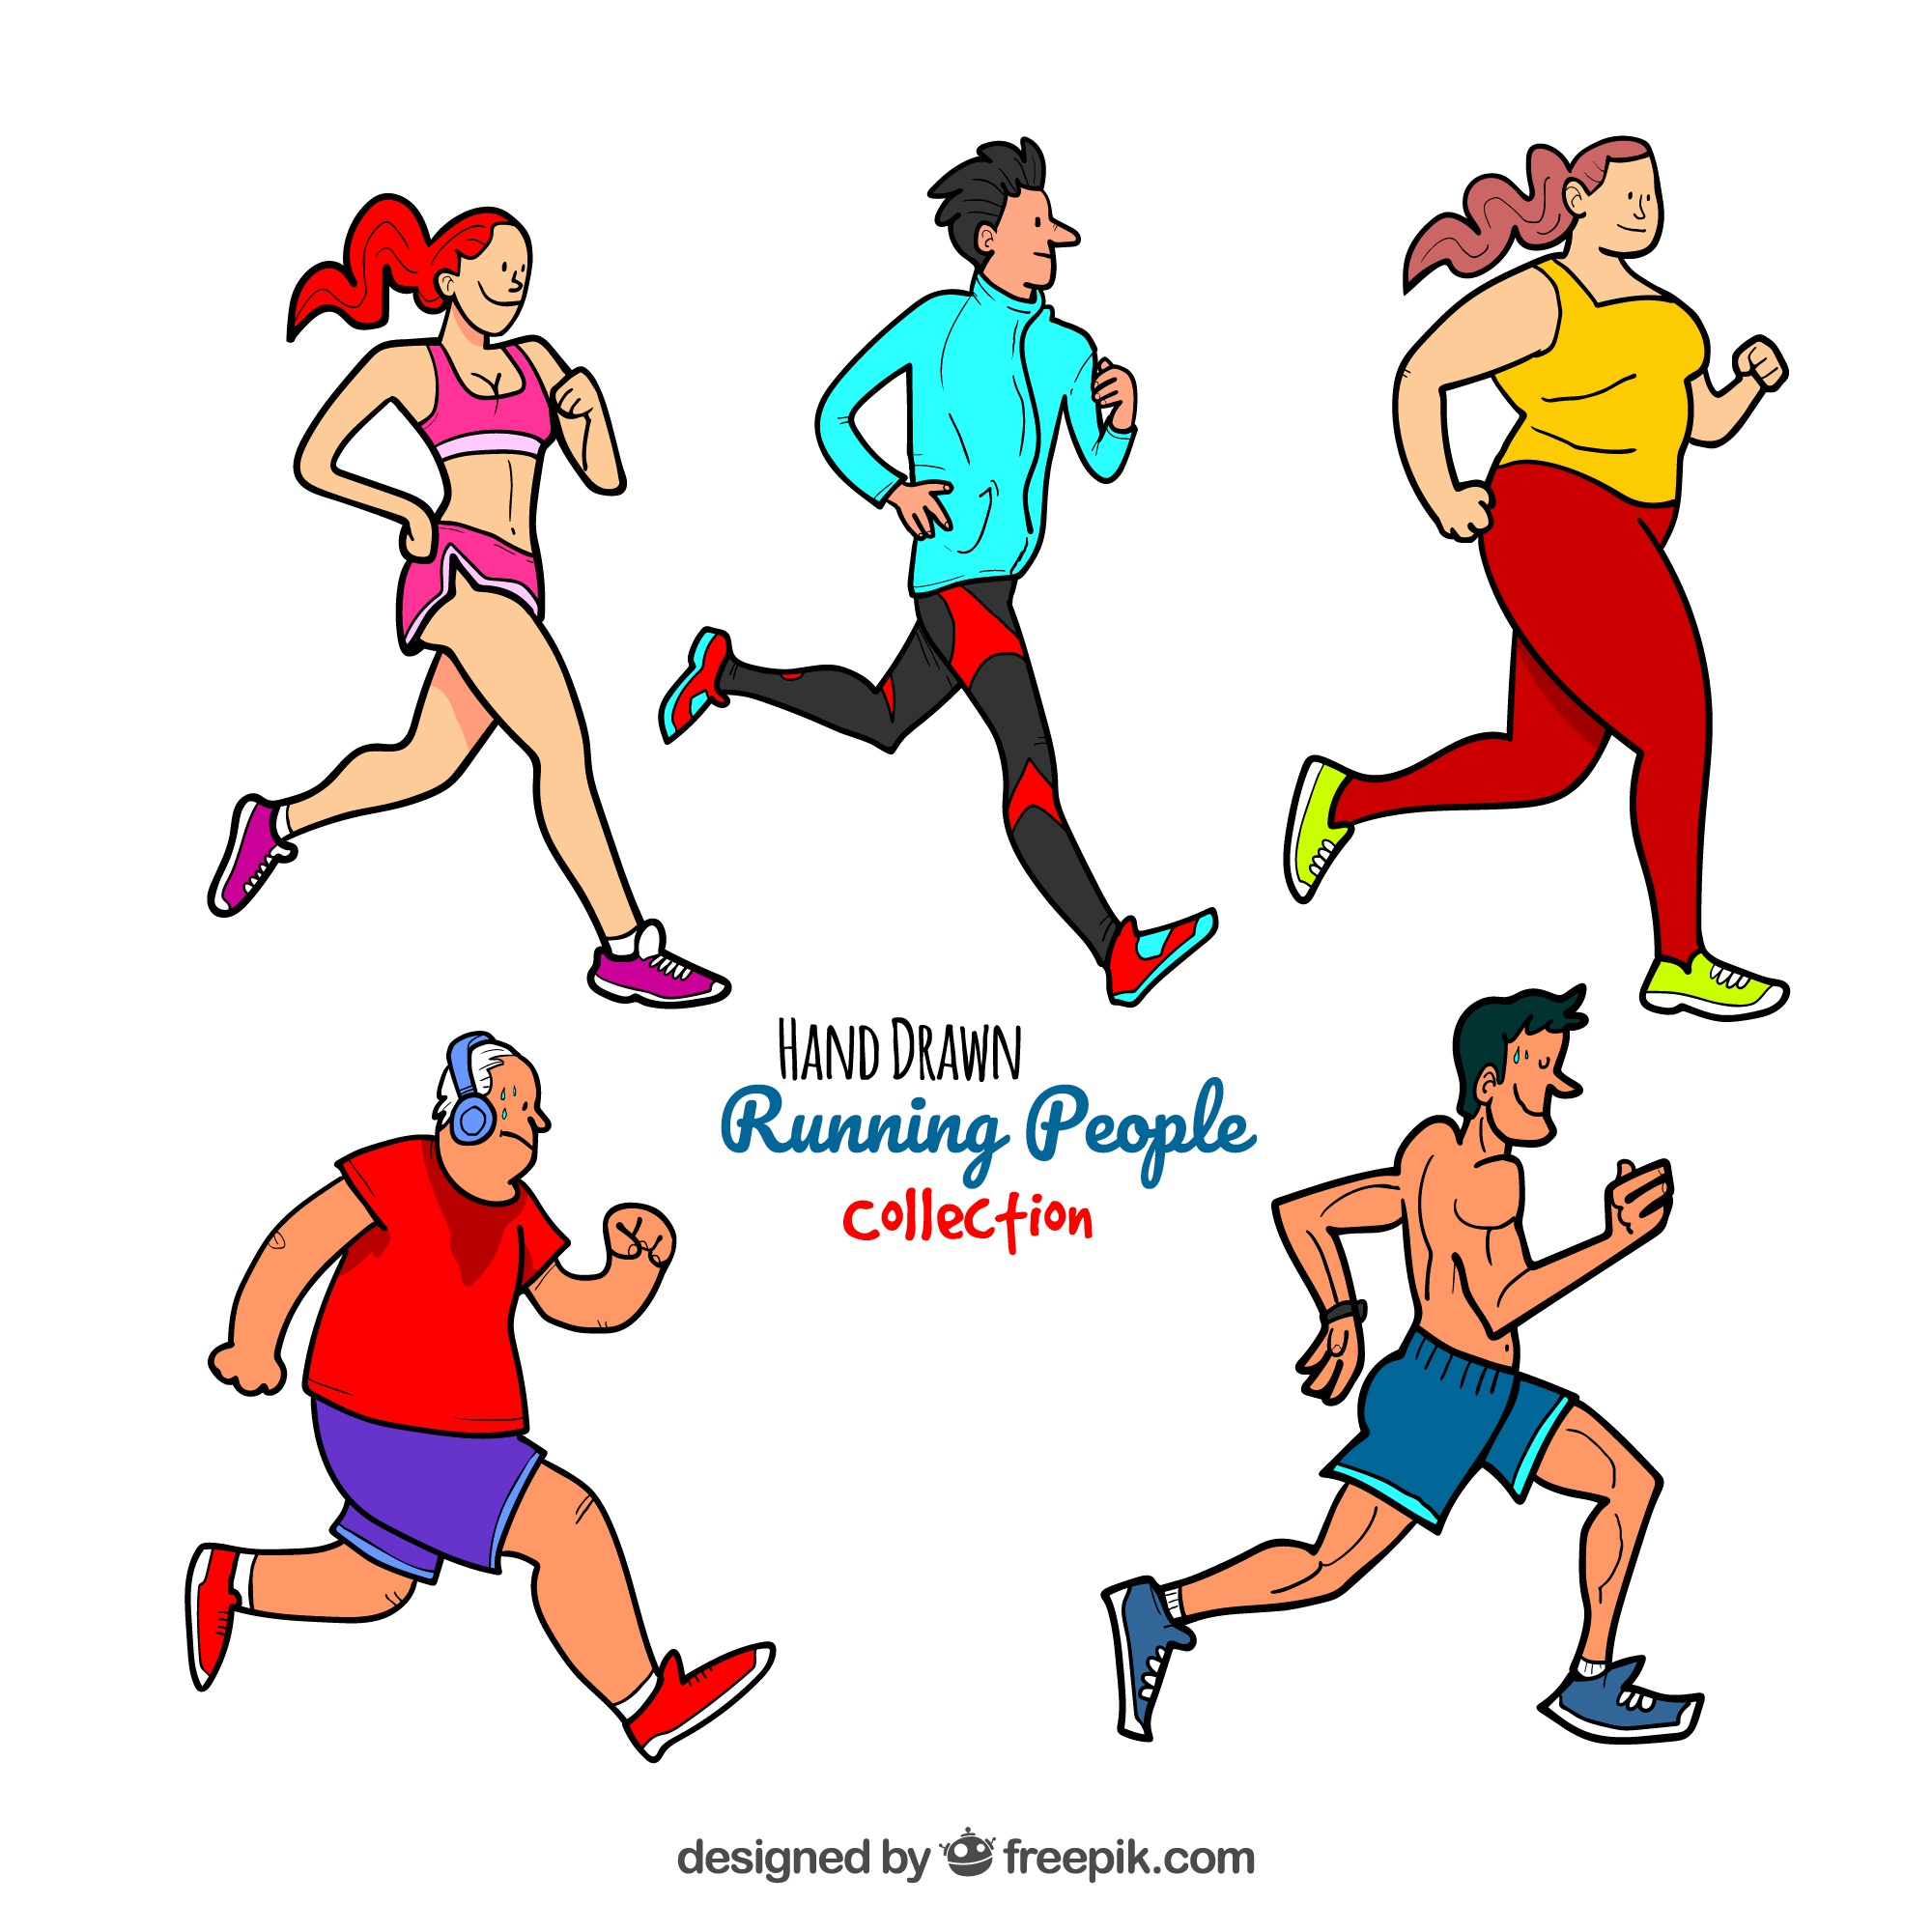 Hand drawn running people collection